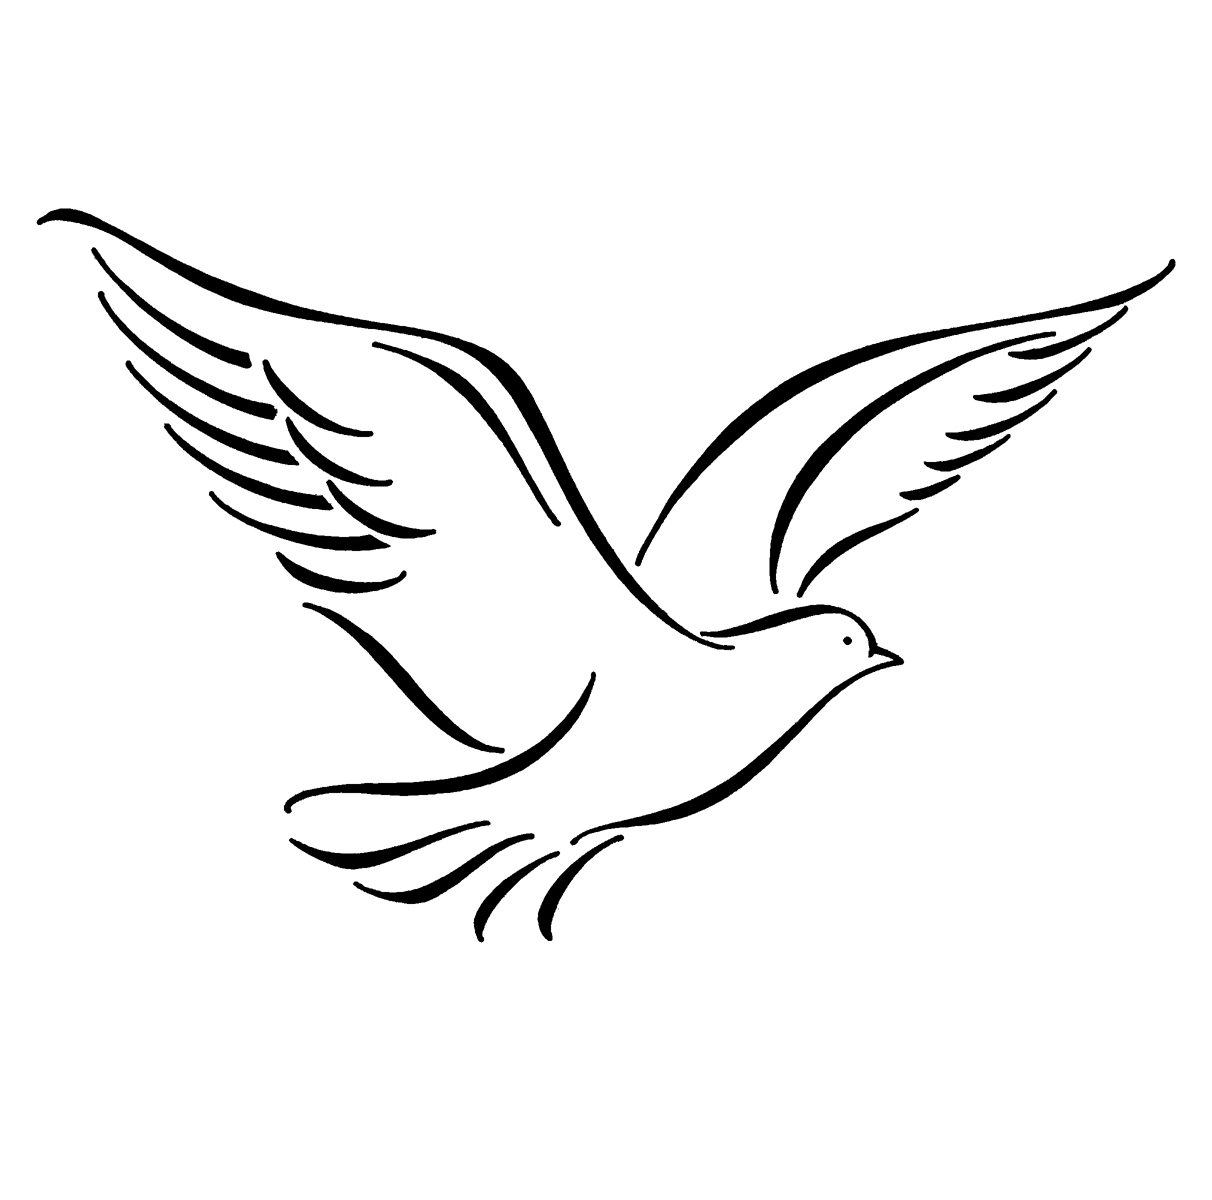 Free Flying Bird Drawing Download Free Clip Art Free Clip Art On Clipart Library